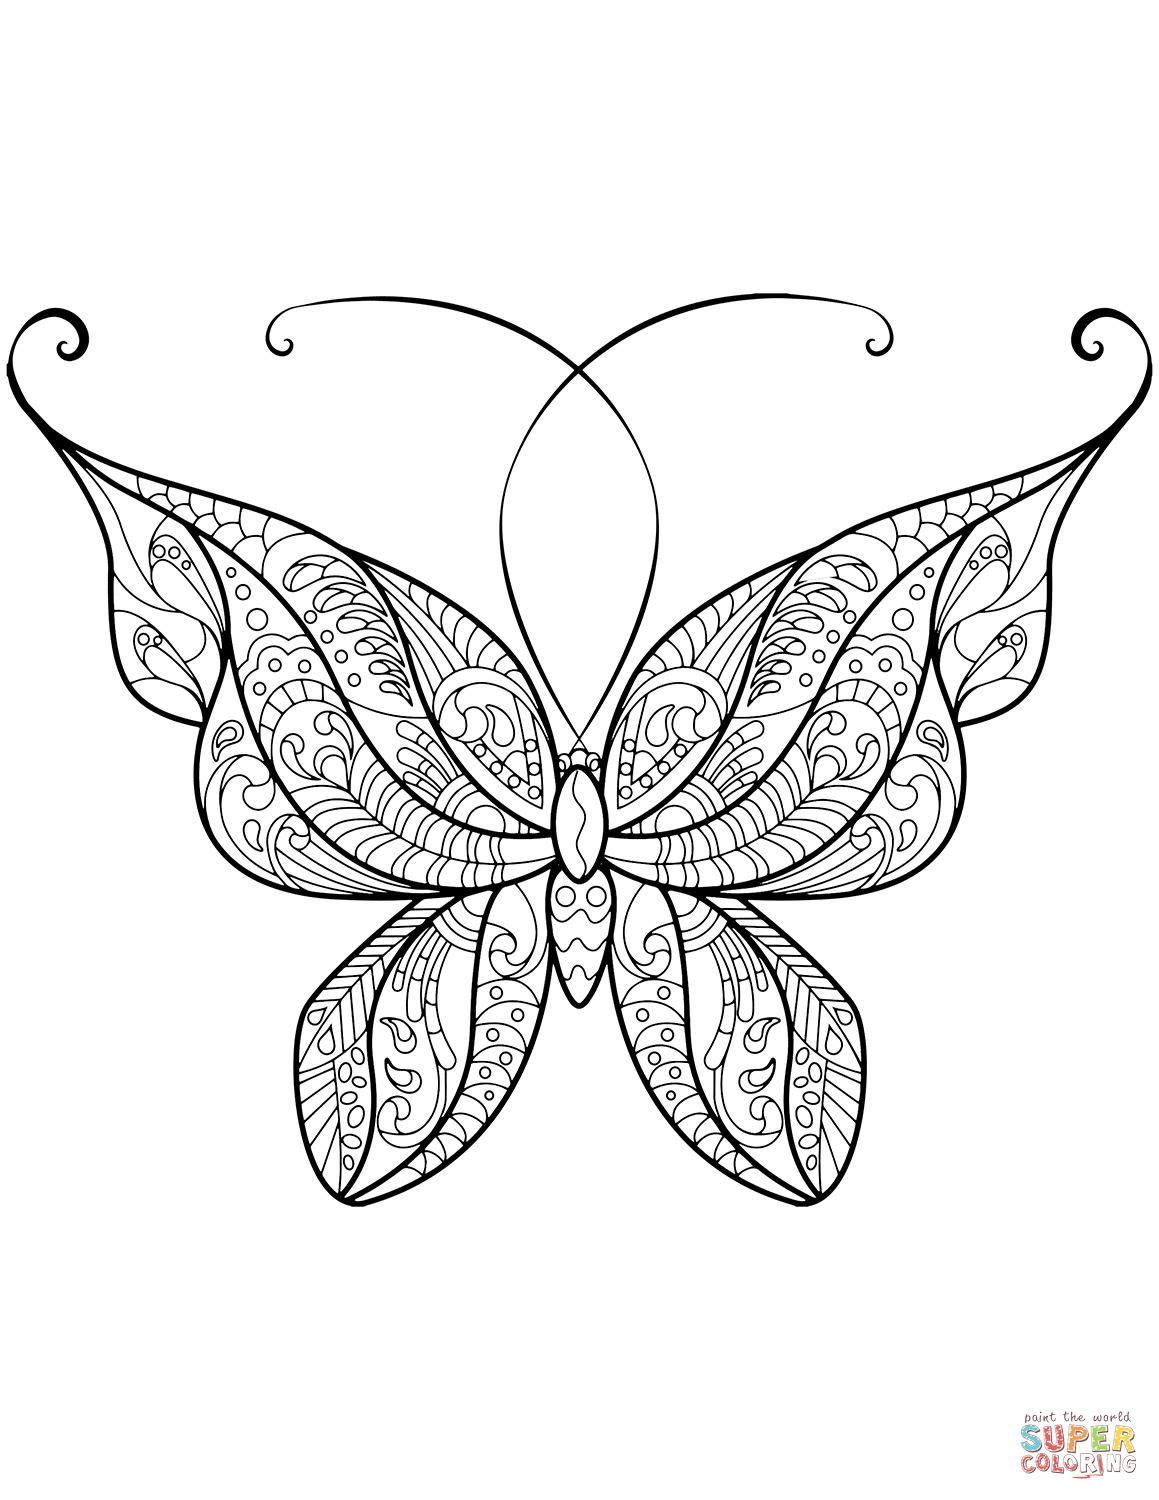 Printable Butterfly In 2020 Butterfly Coloring Page Butterfly